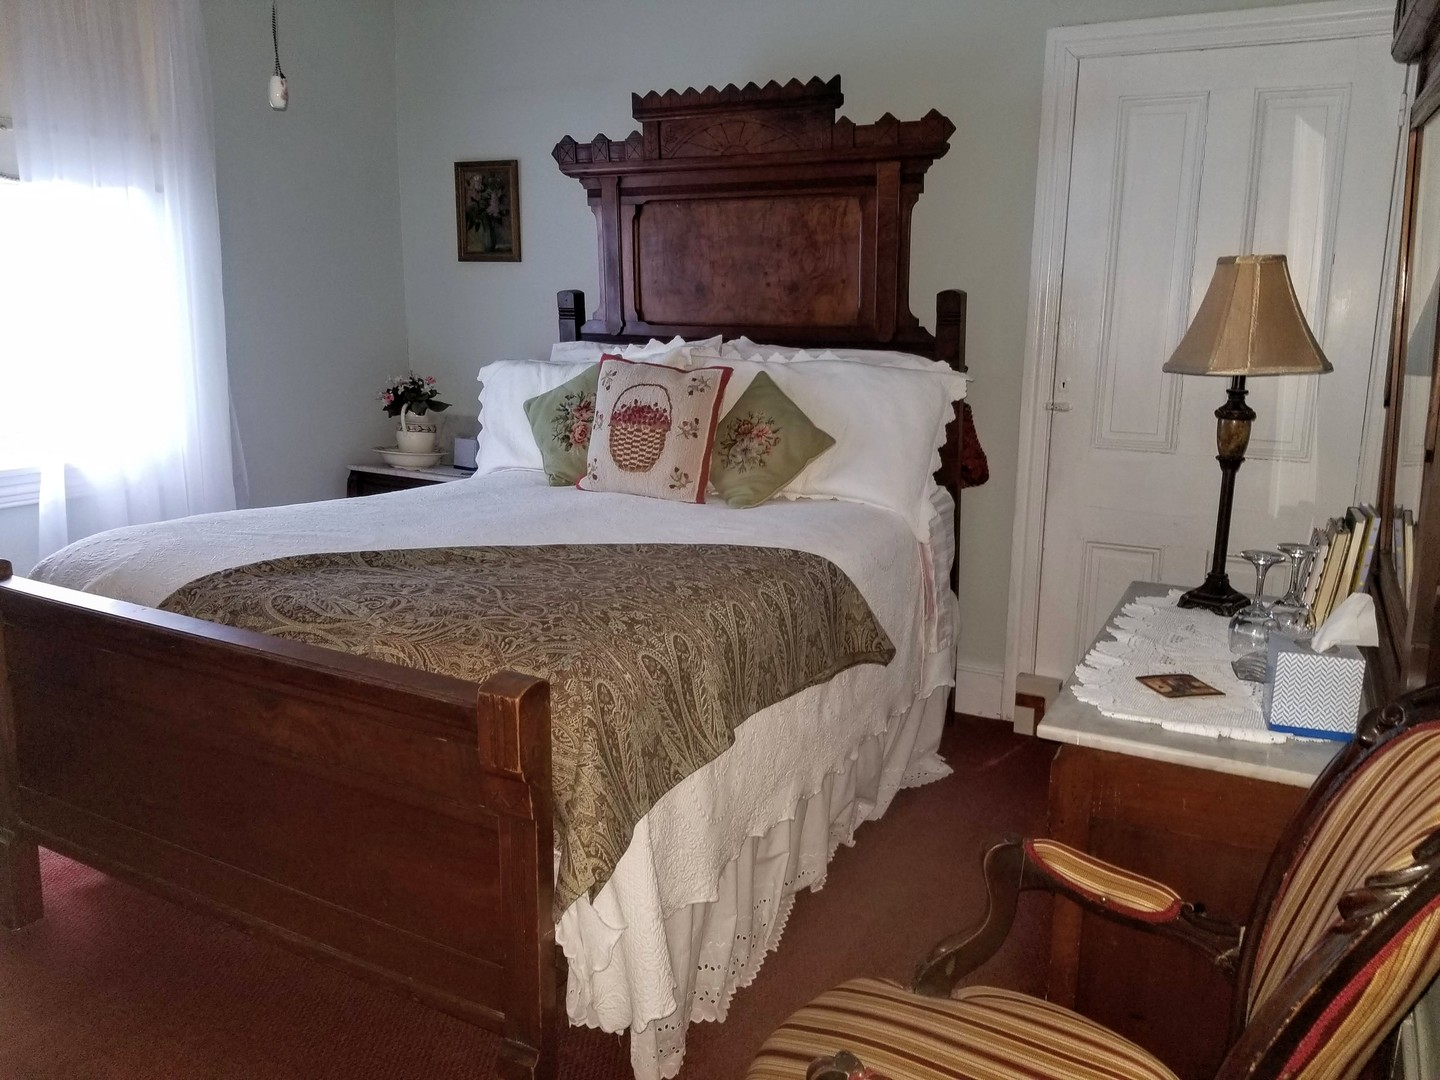 A bedroom with a bed and desk in a room at Twin Gables.